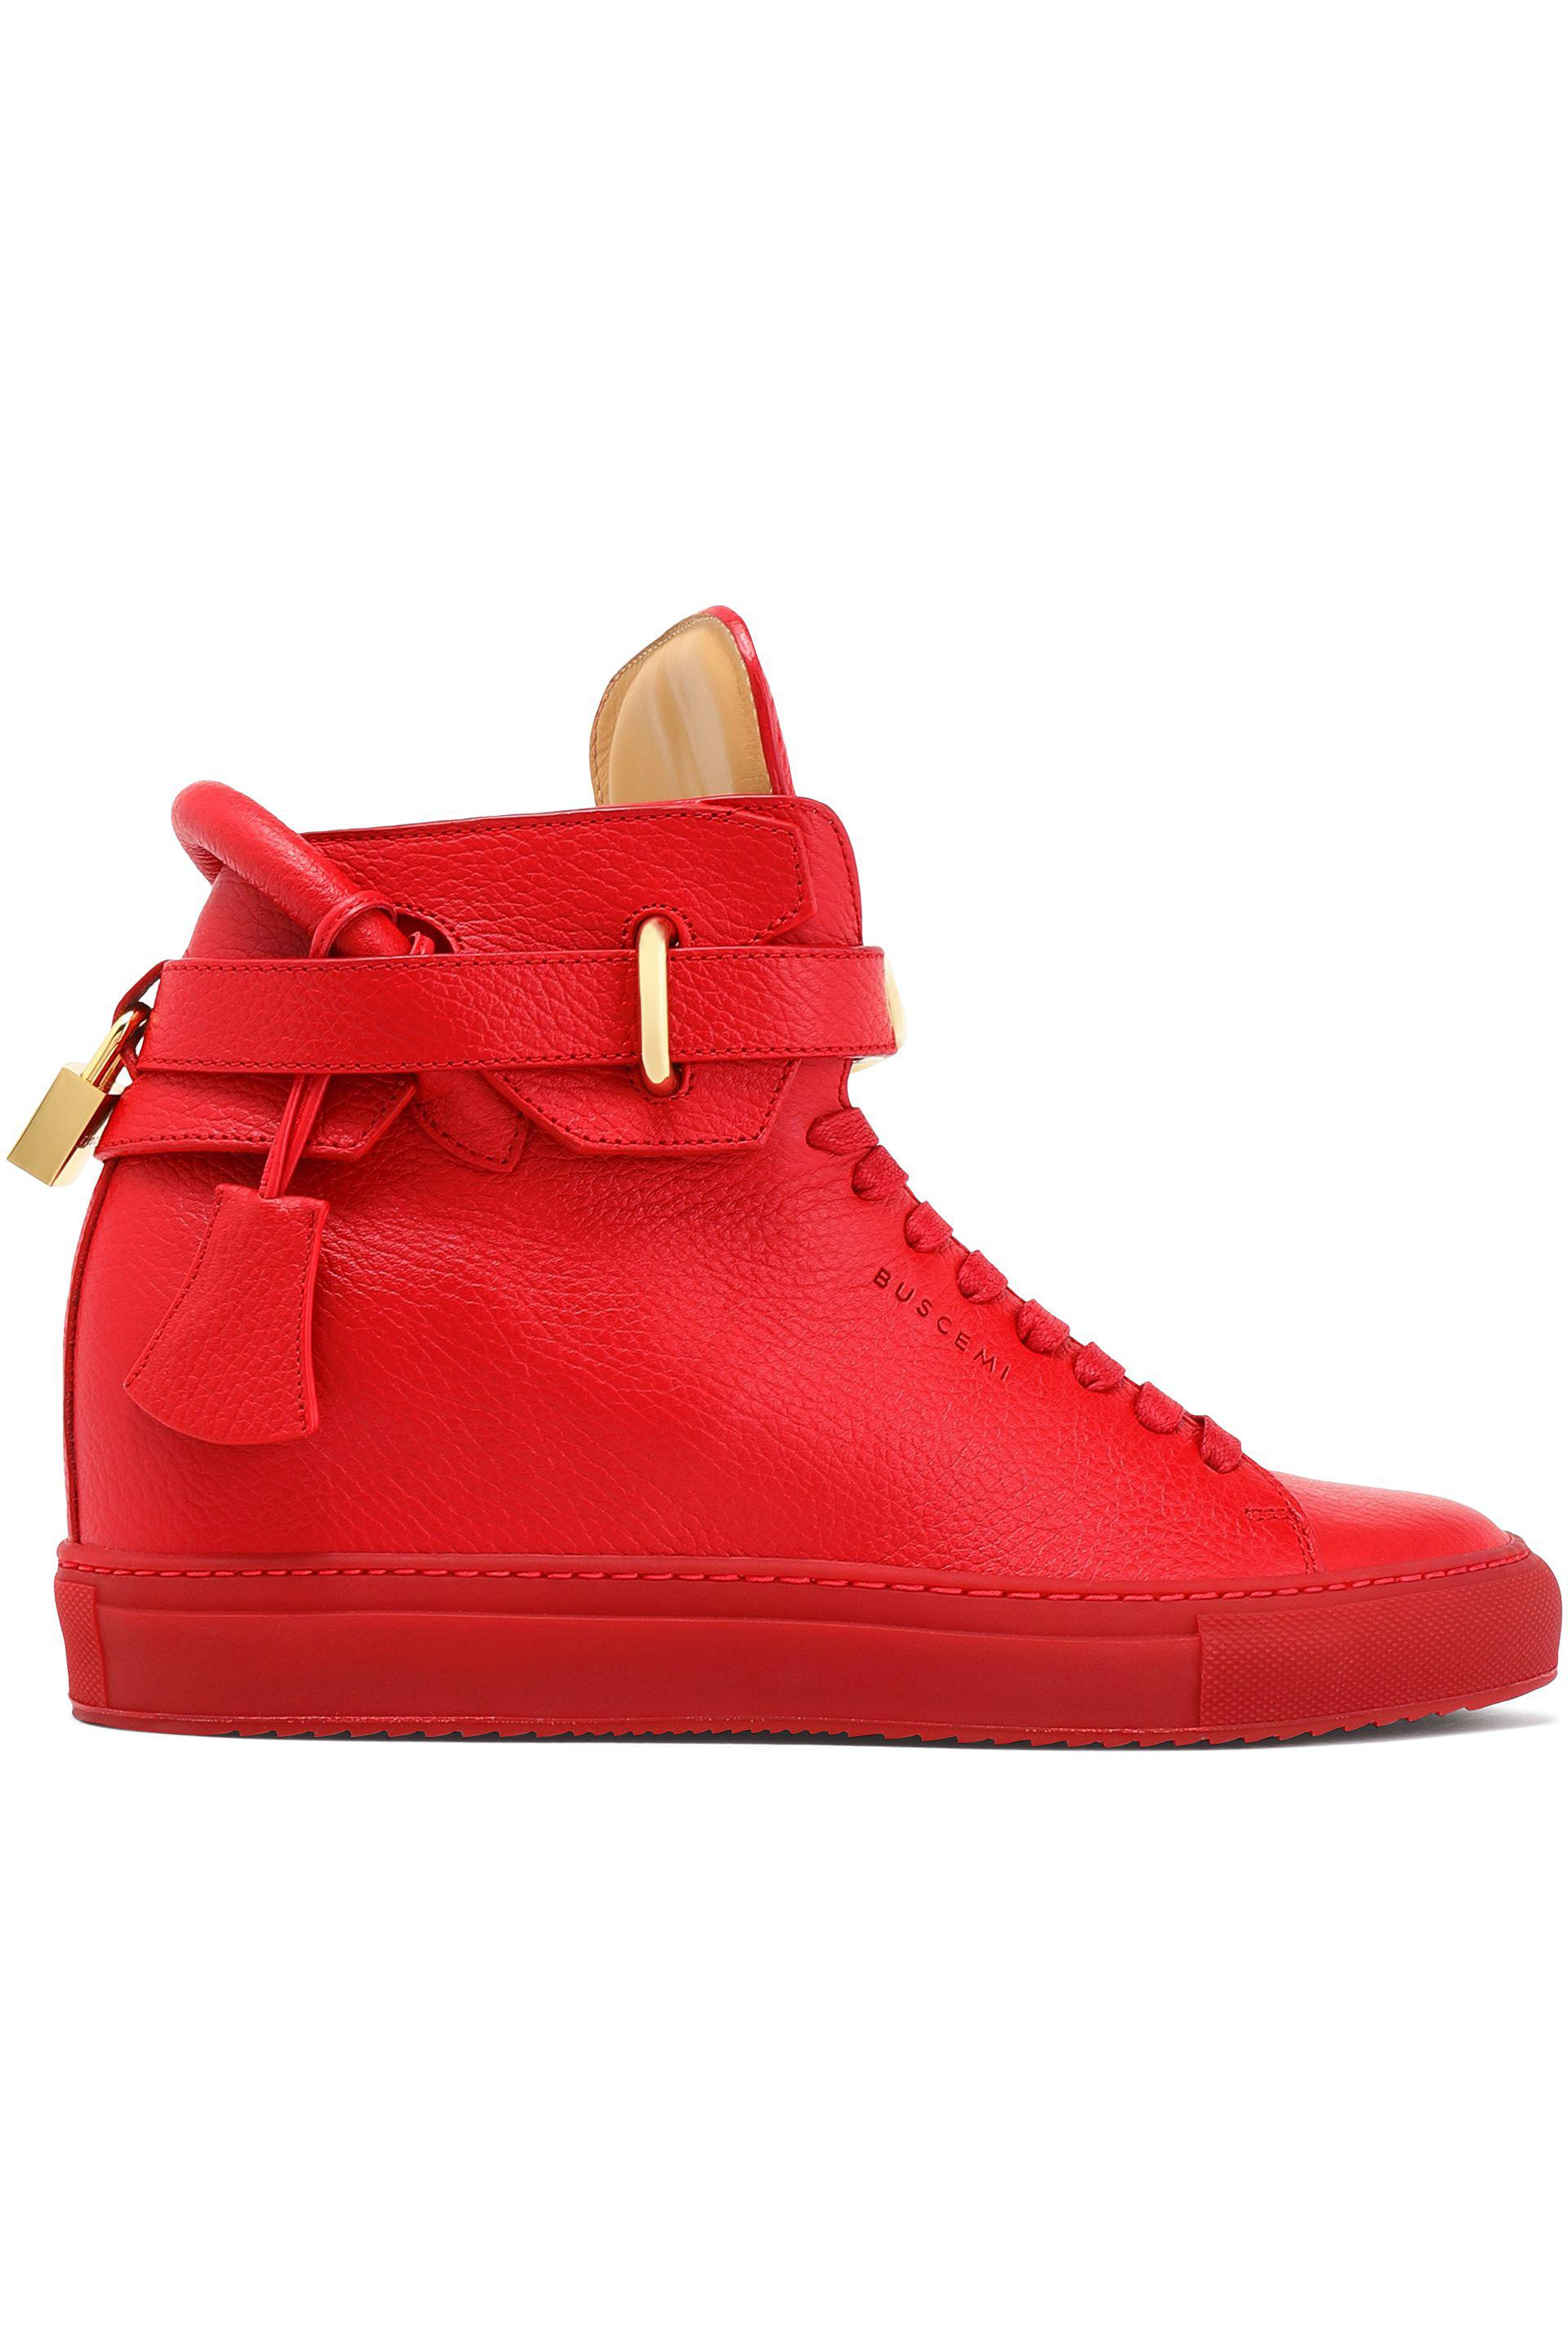 Buscemi Woman Embellished Textured-leather High-top Sneakers Red Size 40 Buscemi X9m6w2fjMS